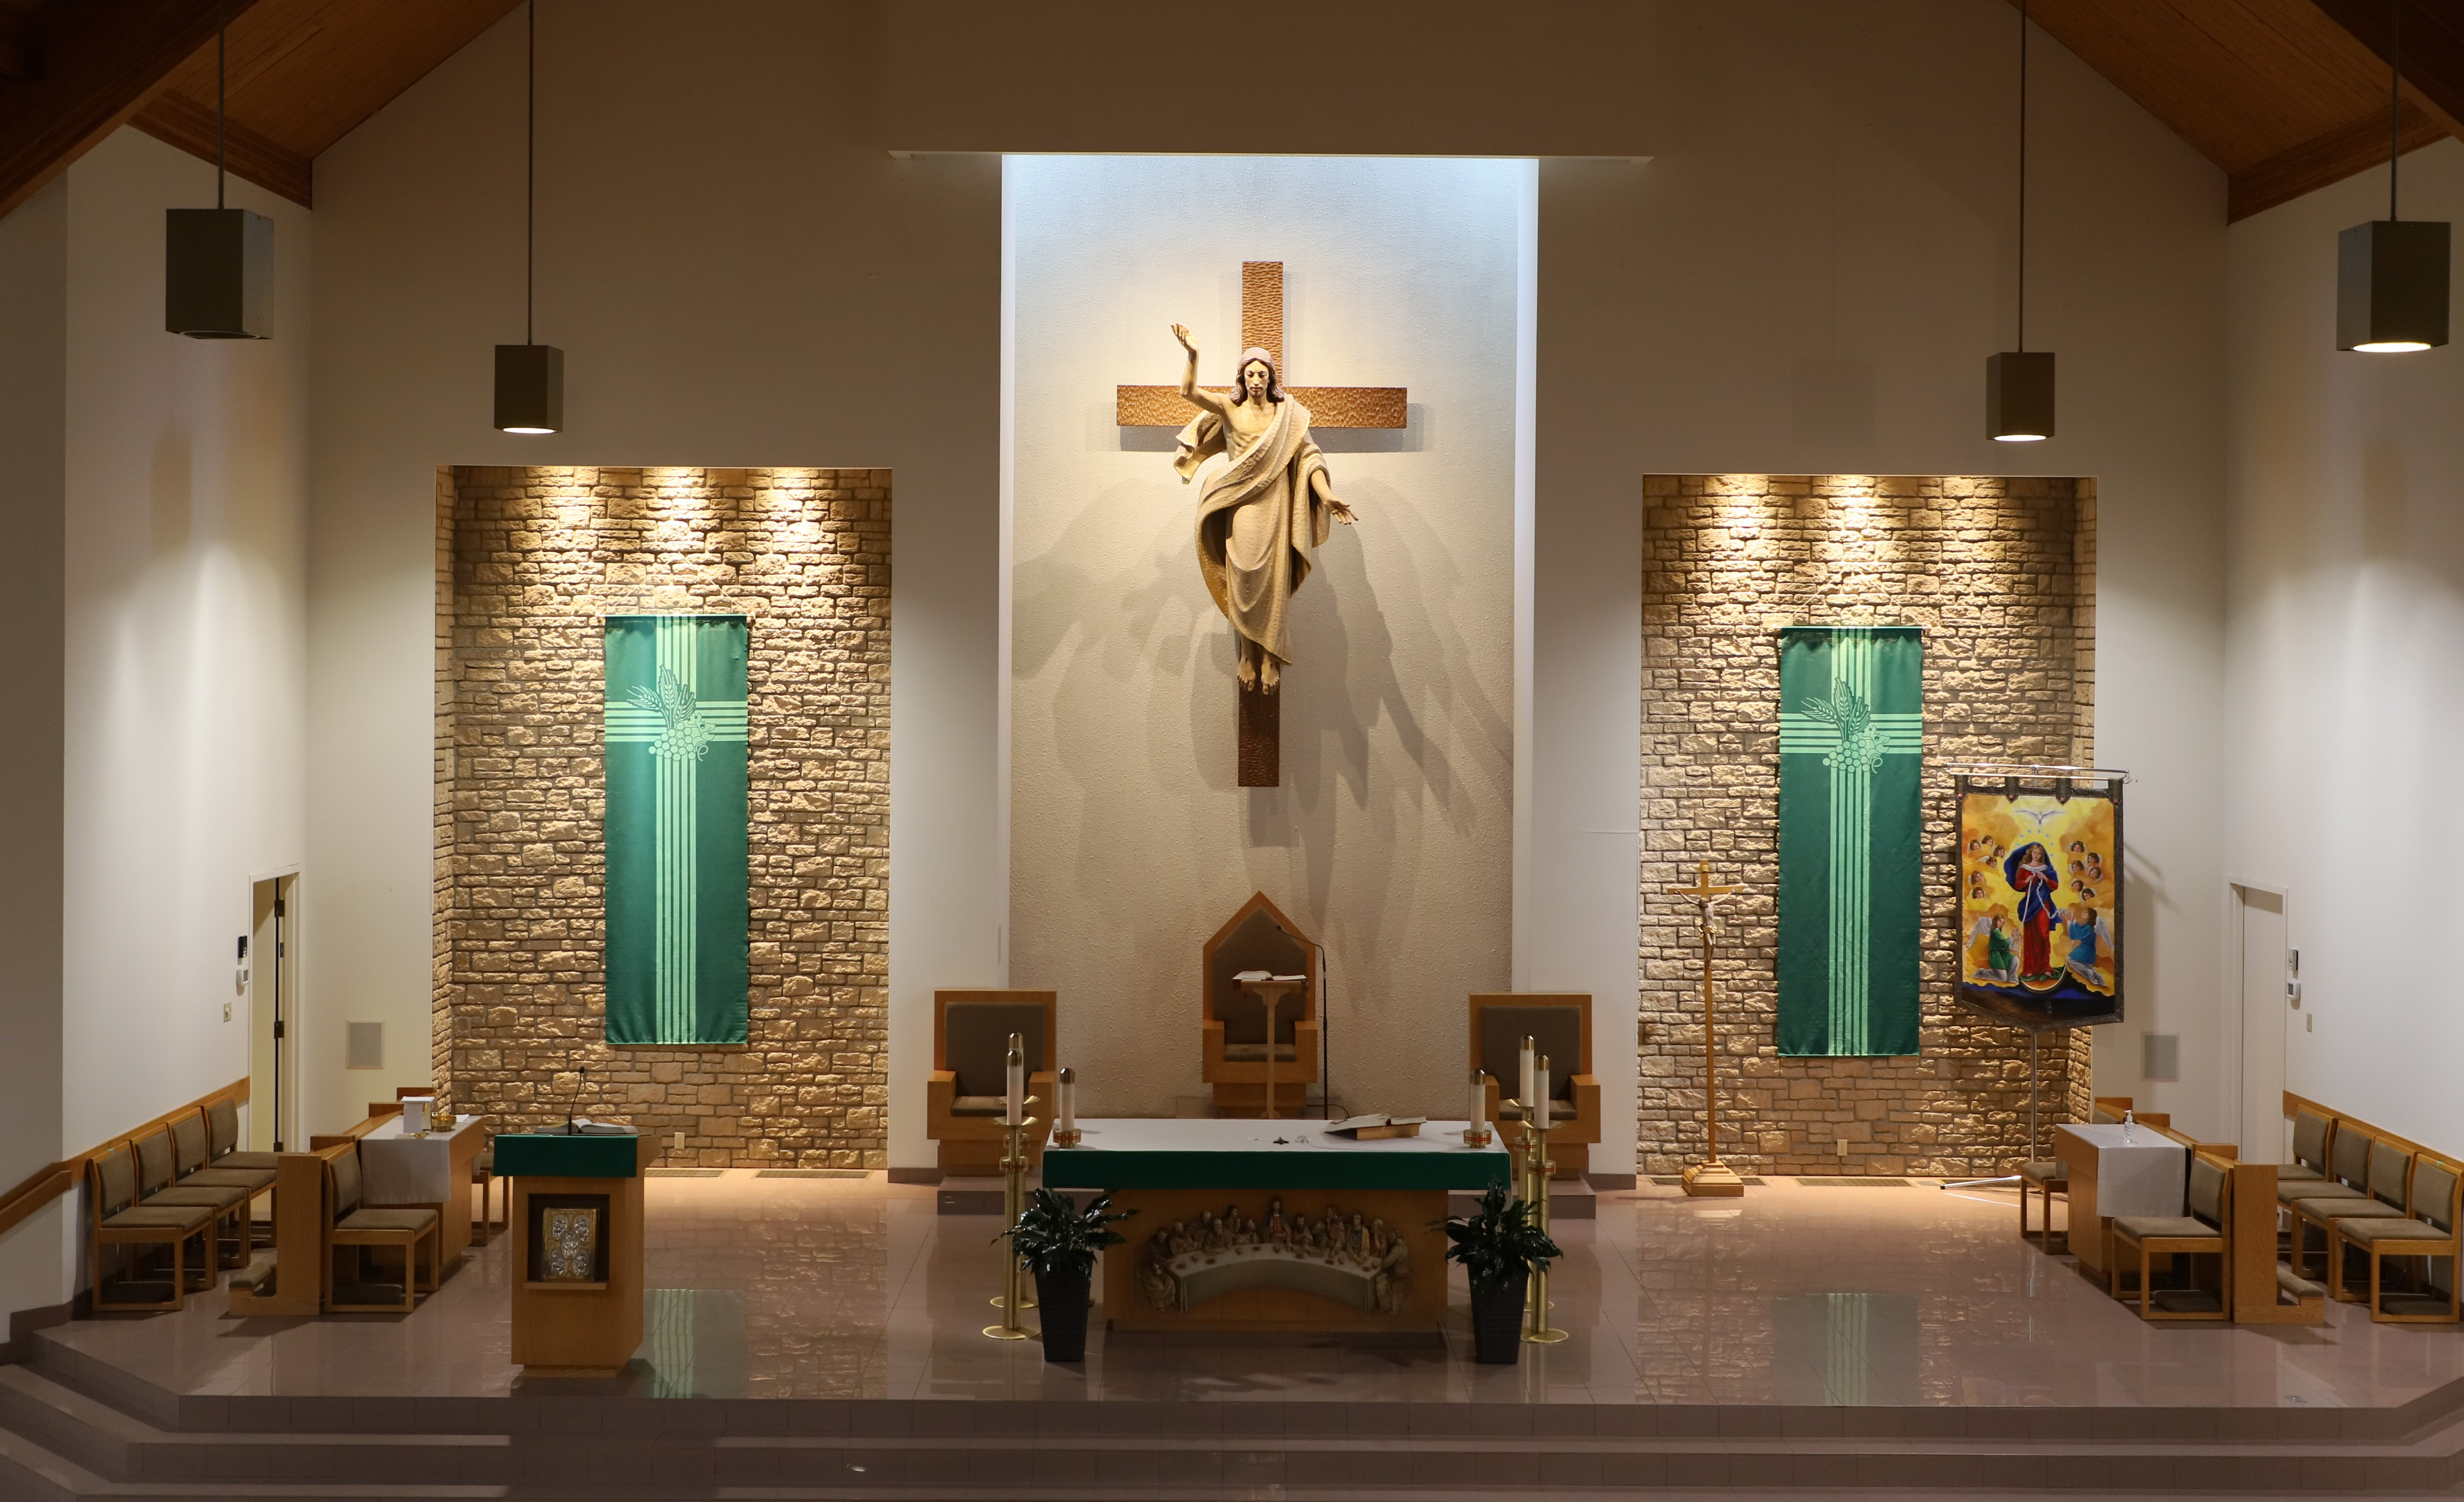 St. Leonard's Altar with green banners for ordinary time